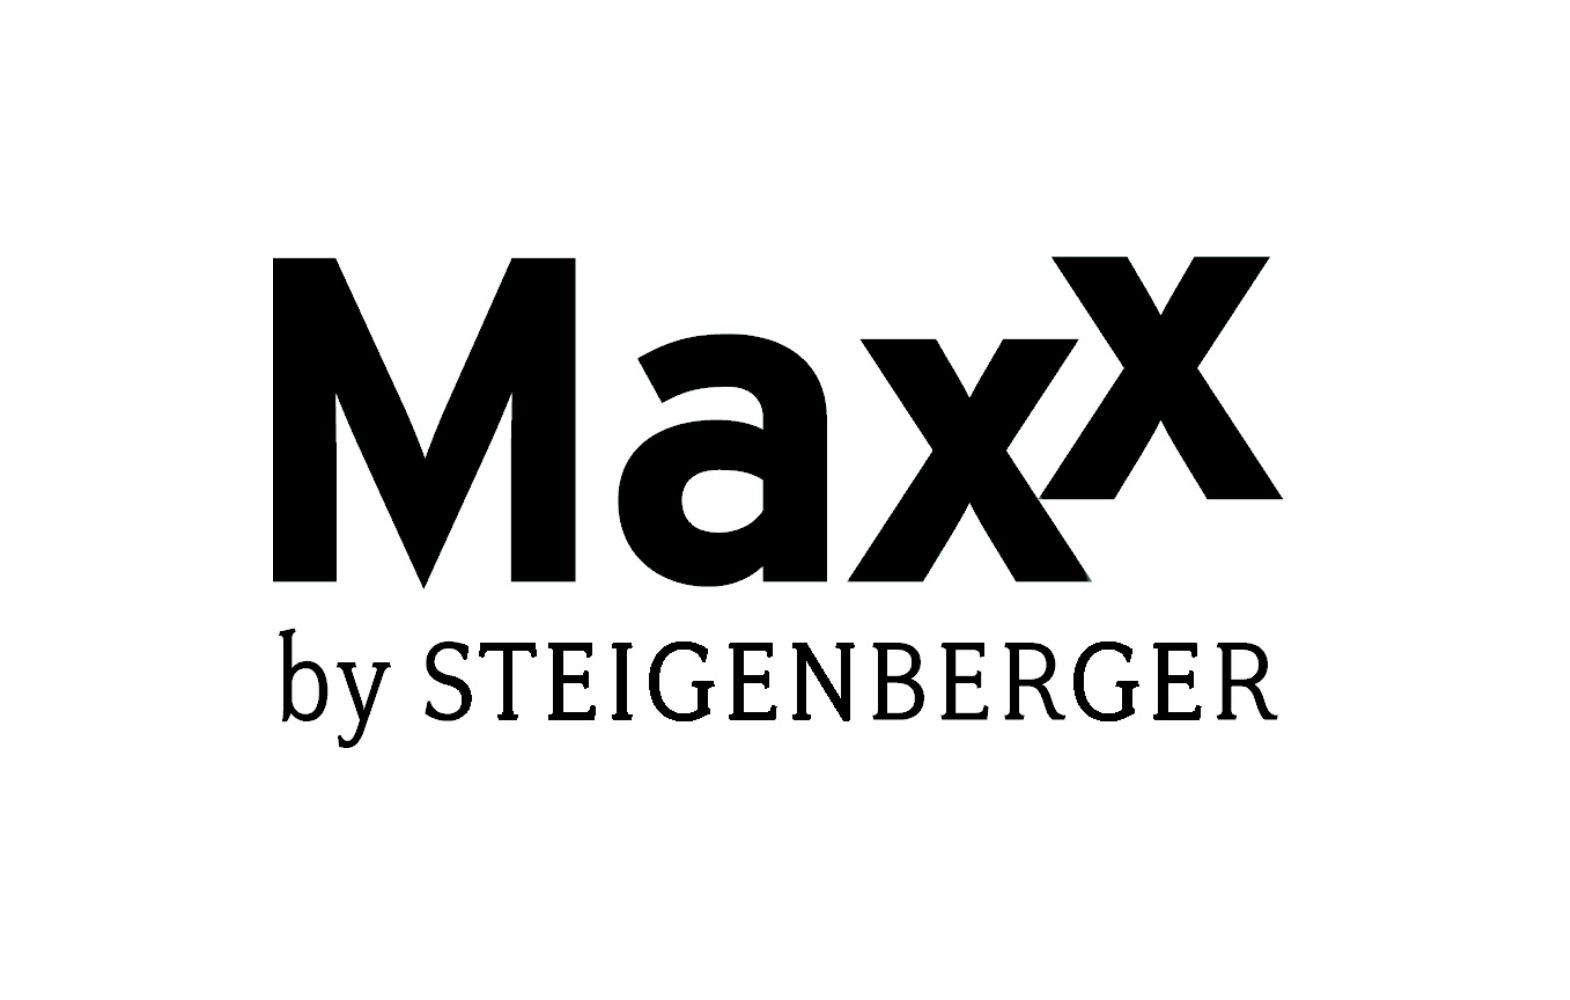 MAXX by Steigenberger